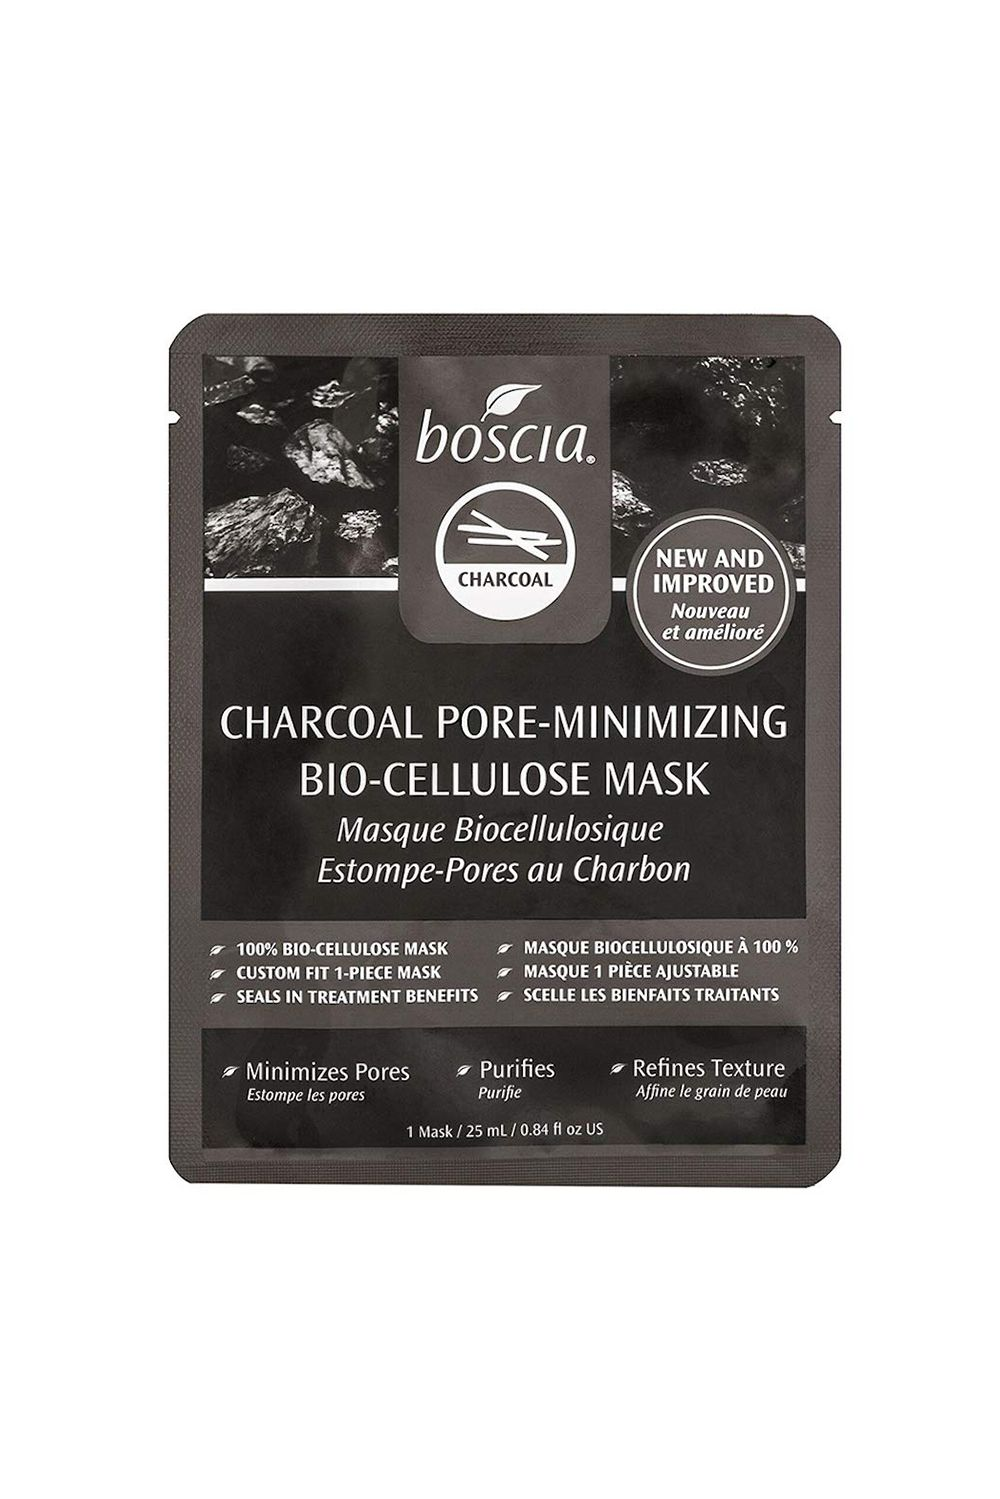 Boscia Charcoal Pore-Minimizing Bio-Cellulose Mask Boscia Charcoal Pore-Minimizing Bio-Cellulose Mask, $8 SHOP IT Having a giant pore day? Happens to the best of us.